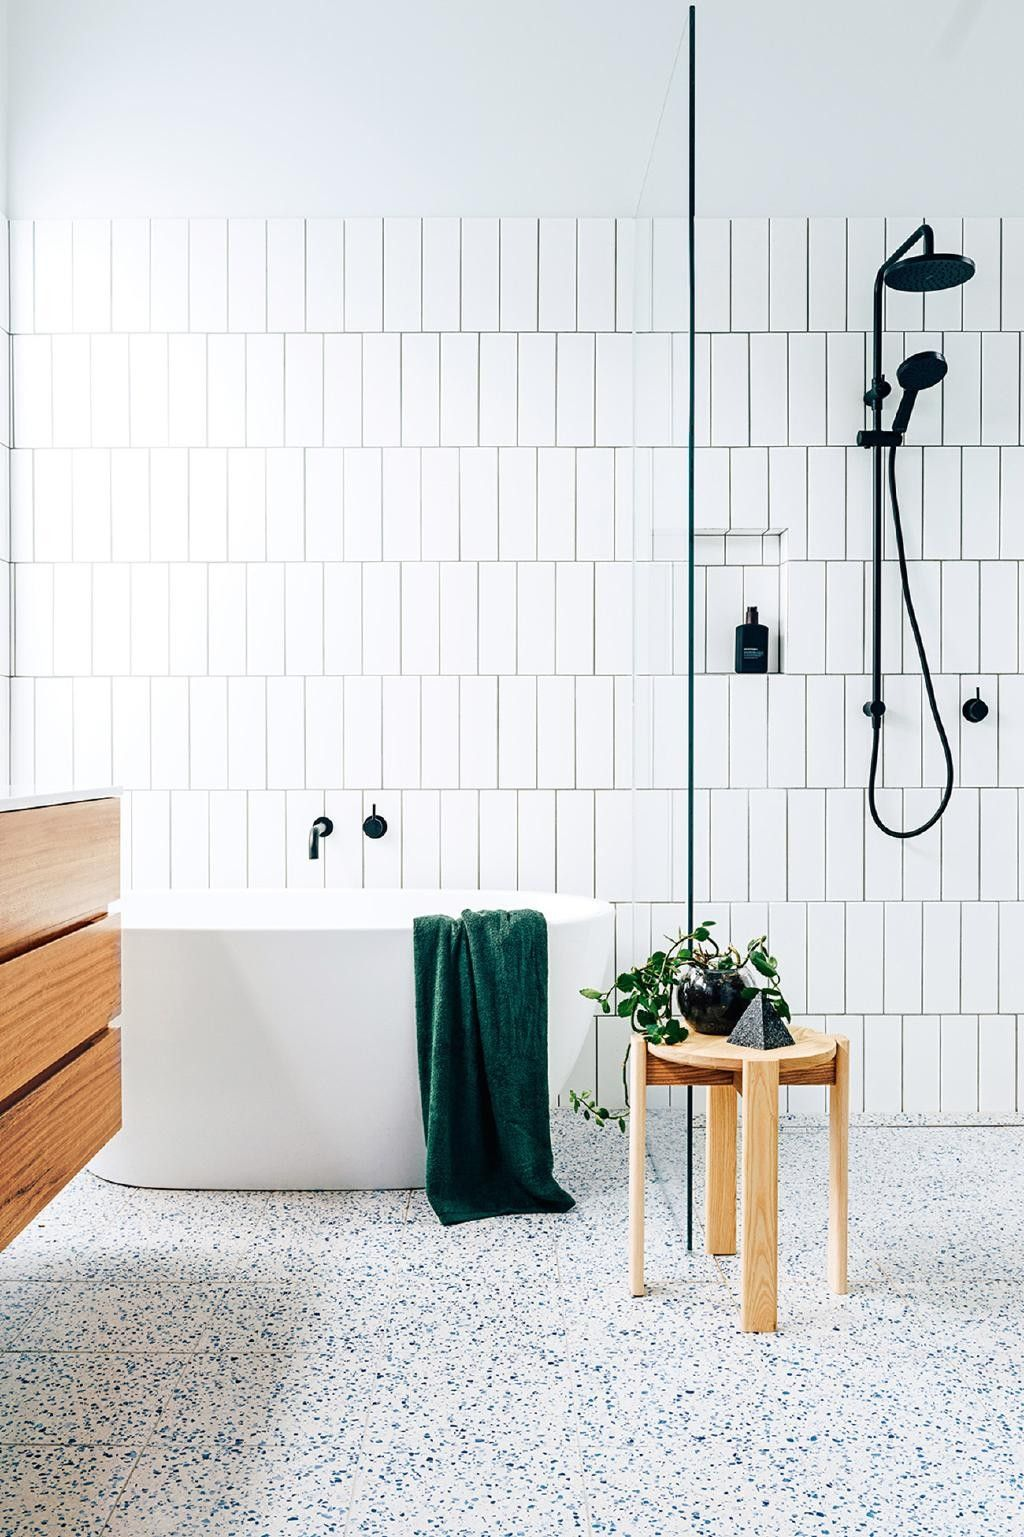 Find Out Now, What Should You Do For Your Bathroom Decor 4 bathroom decor Find Out Now, What Should You Do For Your Bathroom Decor Find Out Now What Should You Do For Your Bathroom Decor 4